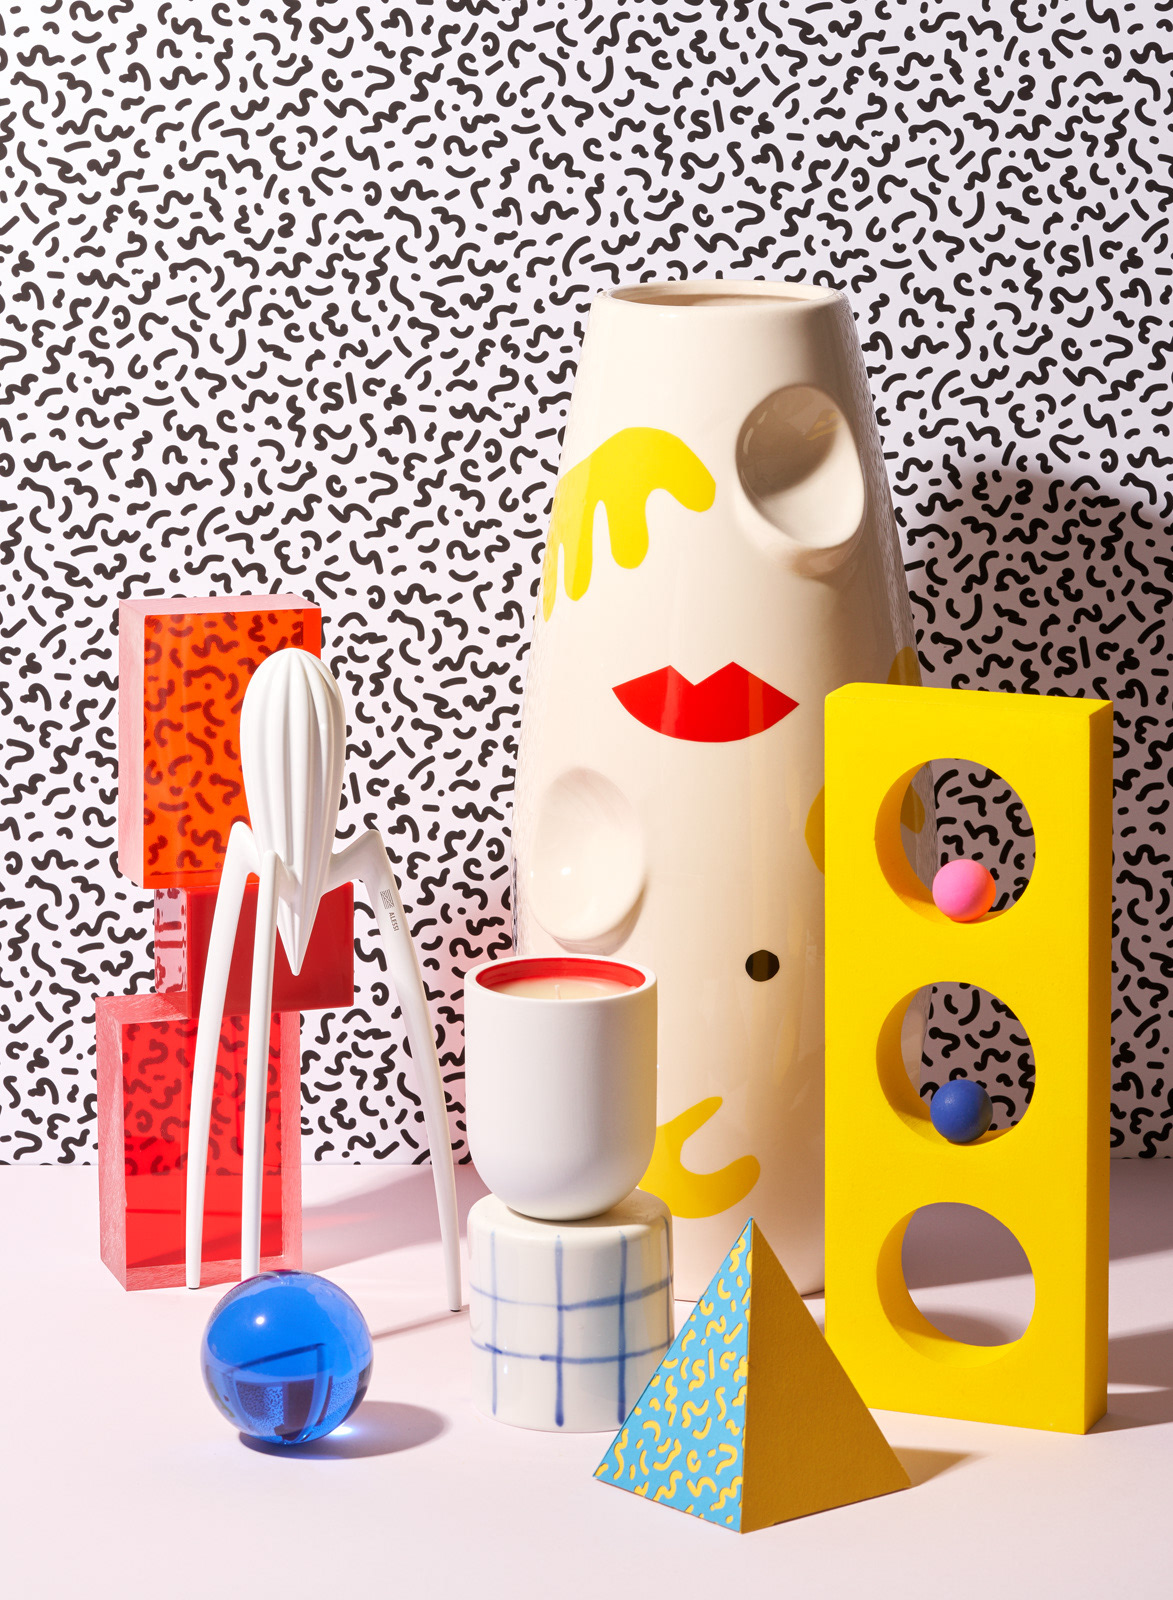 Gift guide with vase, candle, juice press by Alessi inspired by Memphis Design Movement